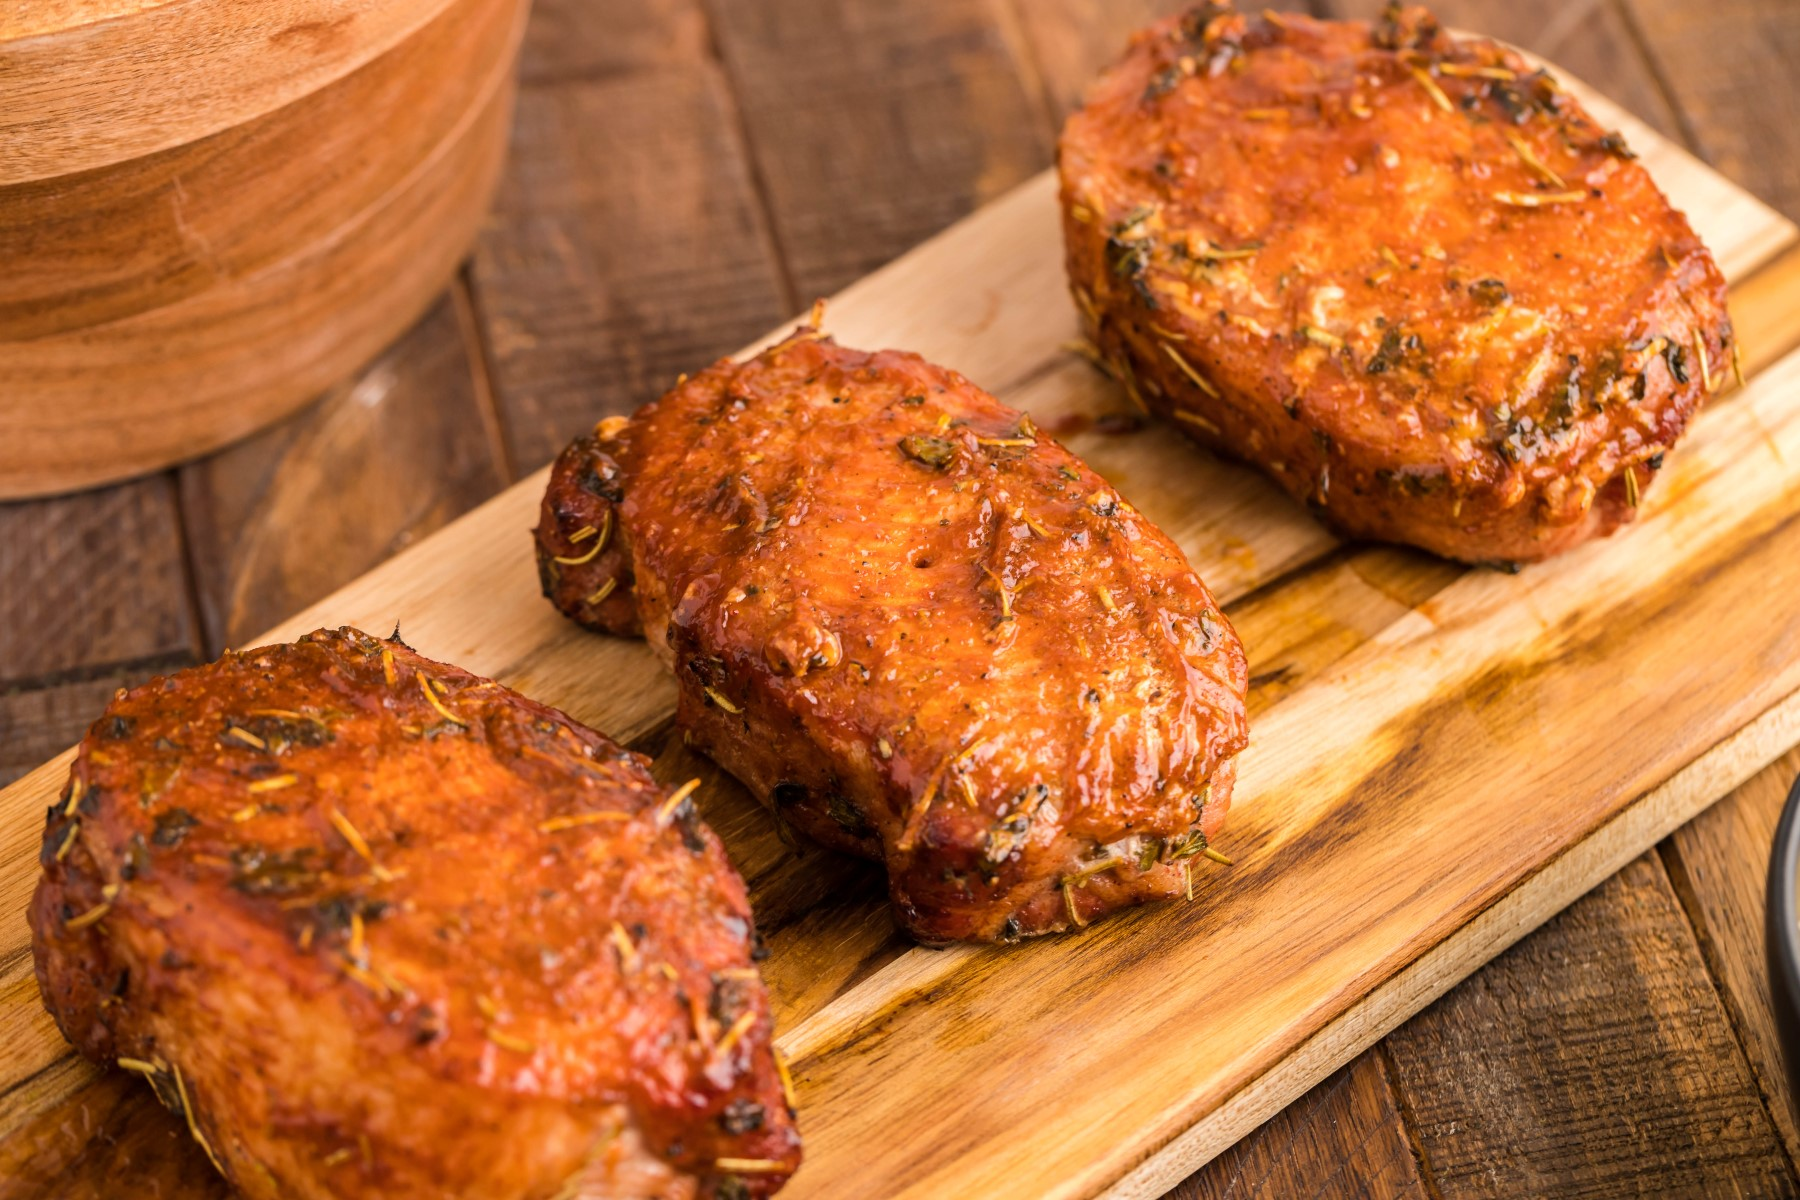 Smoked pork chops on a wooden board covered in BBQ sauce